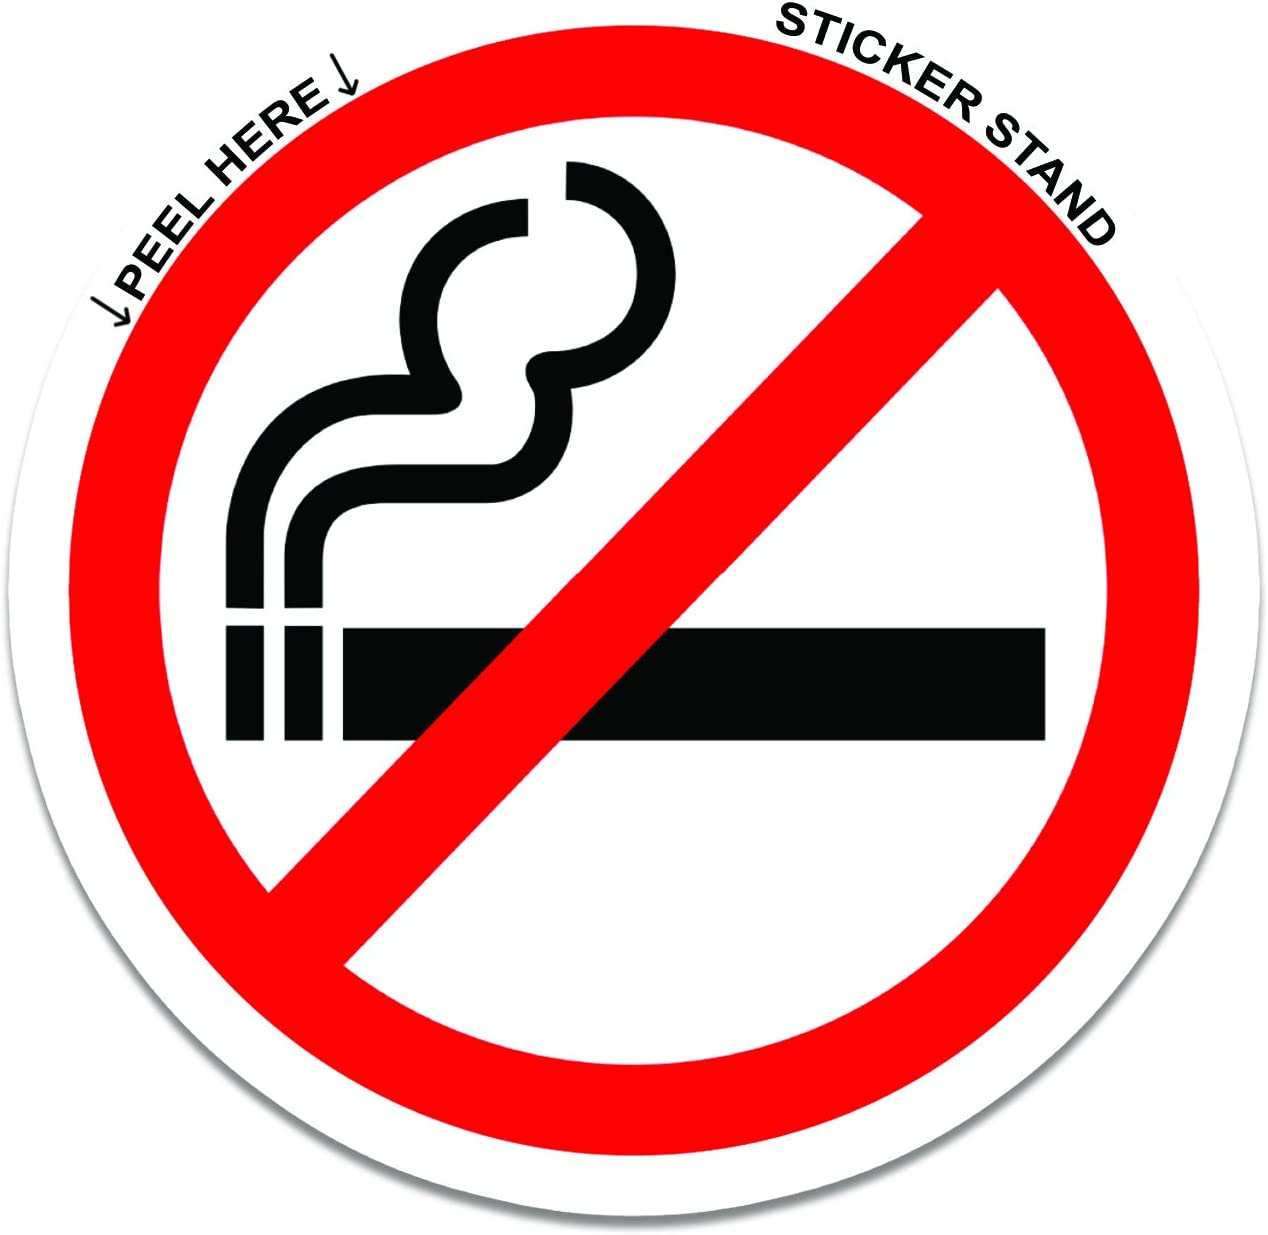 NO SMOKING LOGO ROUND CIRCULAR SELF ADHESIVE STICKERS LABELS SIGNS PACK OF 10